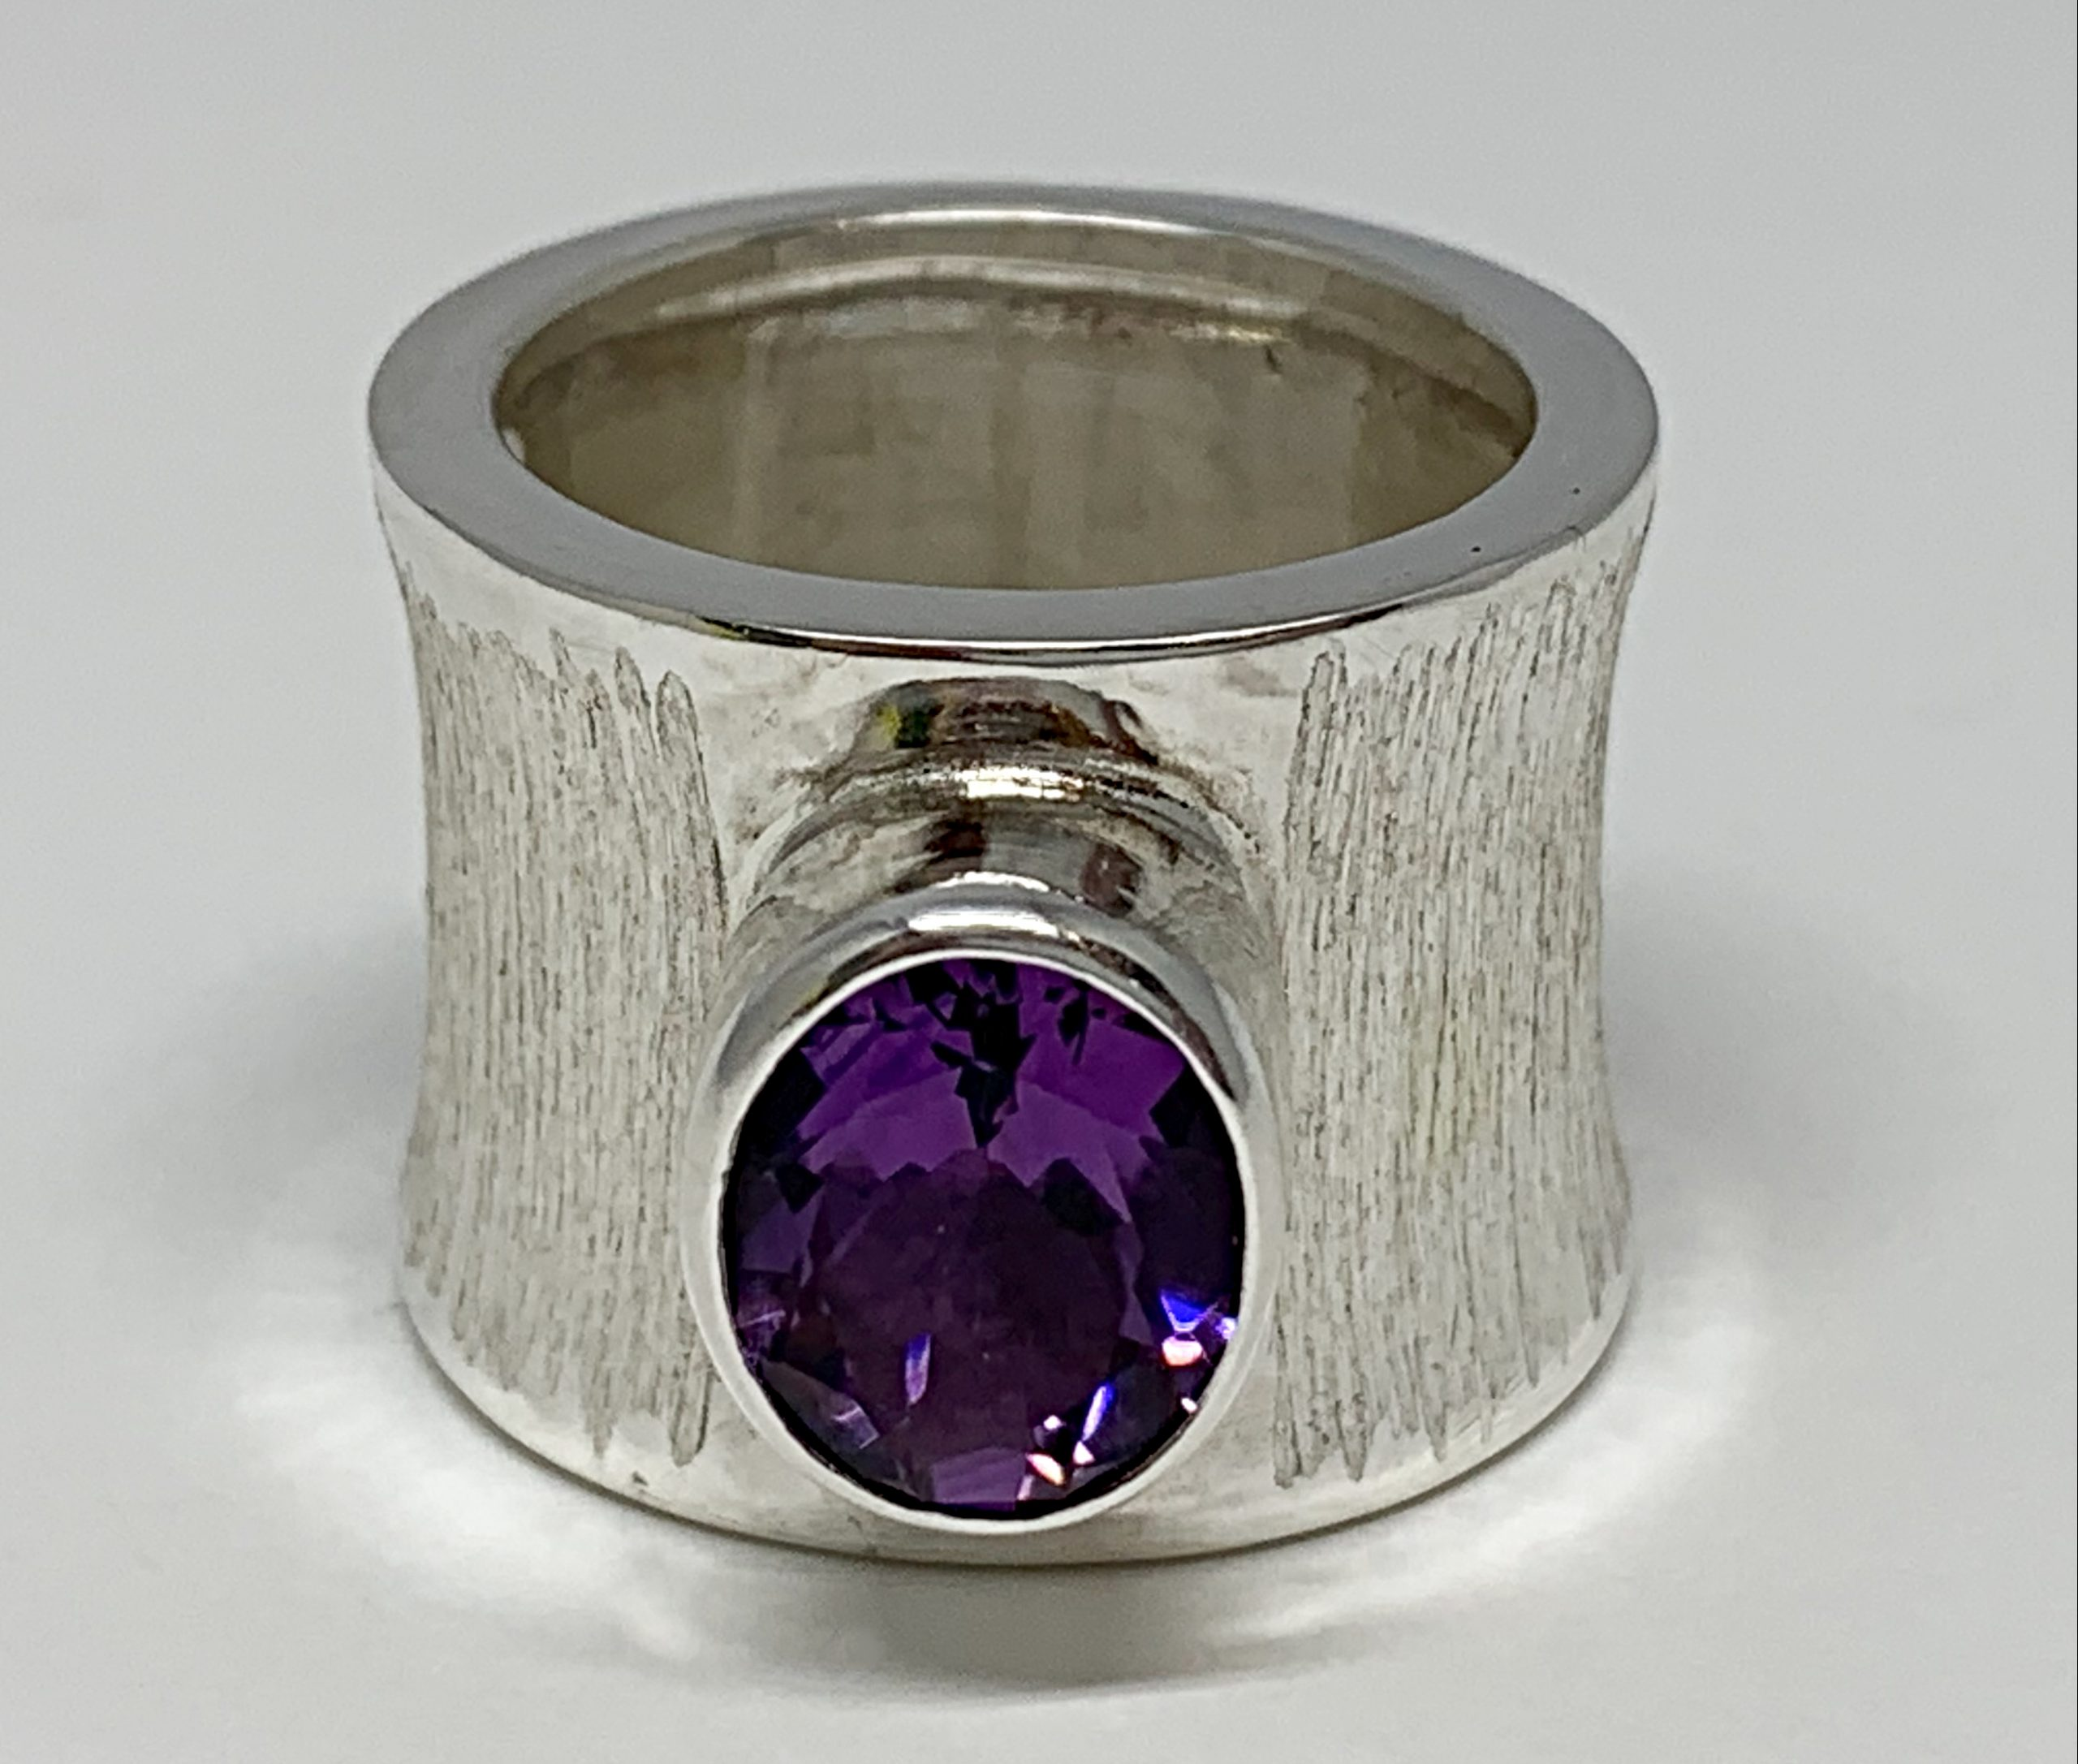 Sterling silver and amethyst ring by A&R Jewellery | Effusion Art Gallery + Cast Glass Studio, Invermere BC